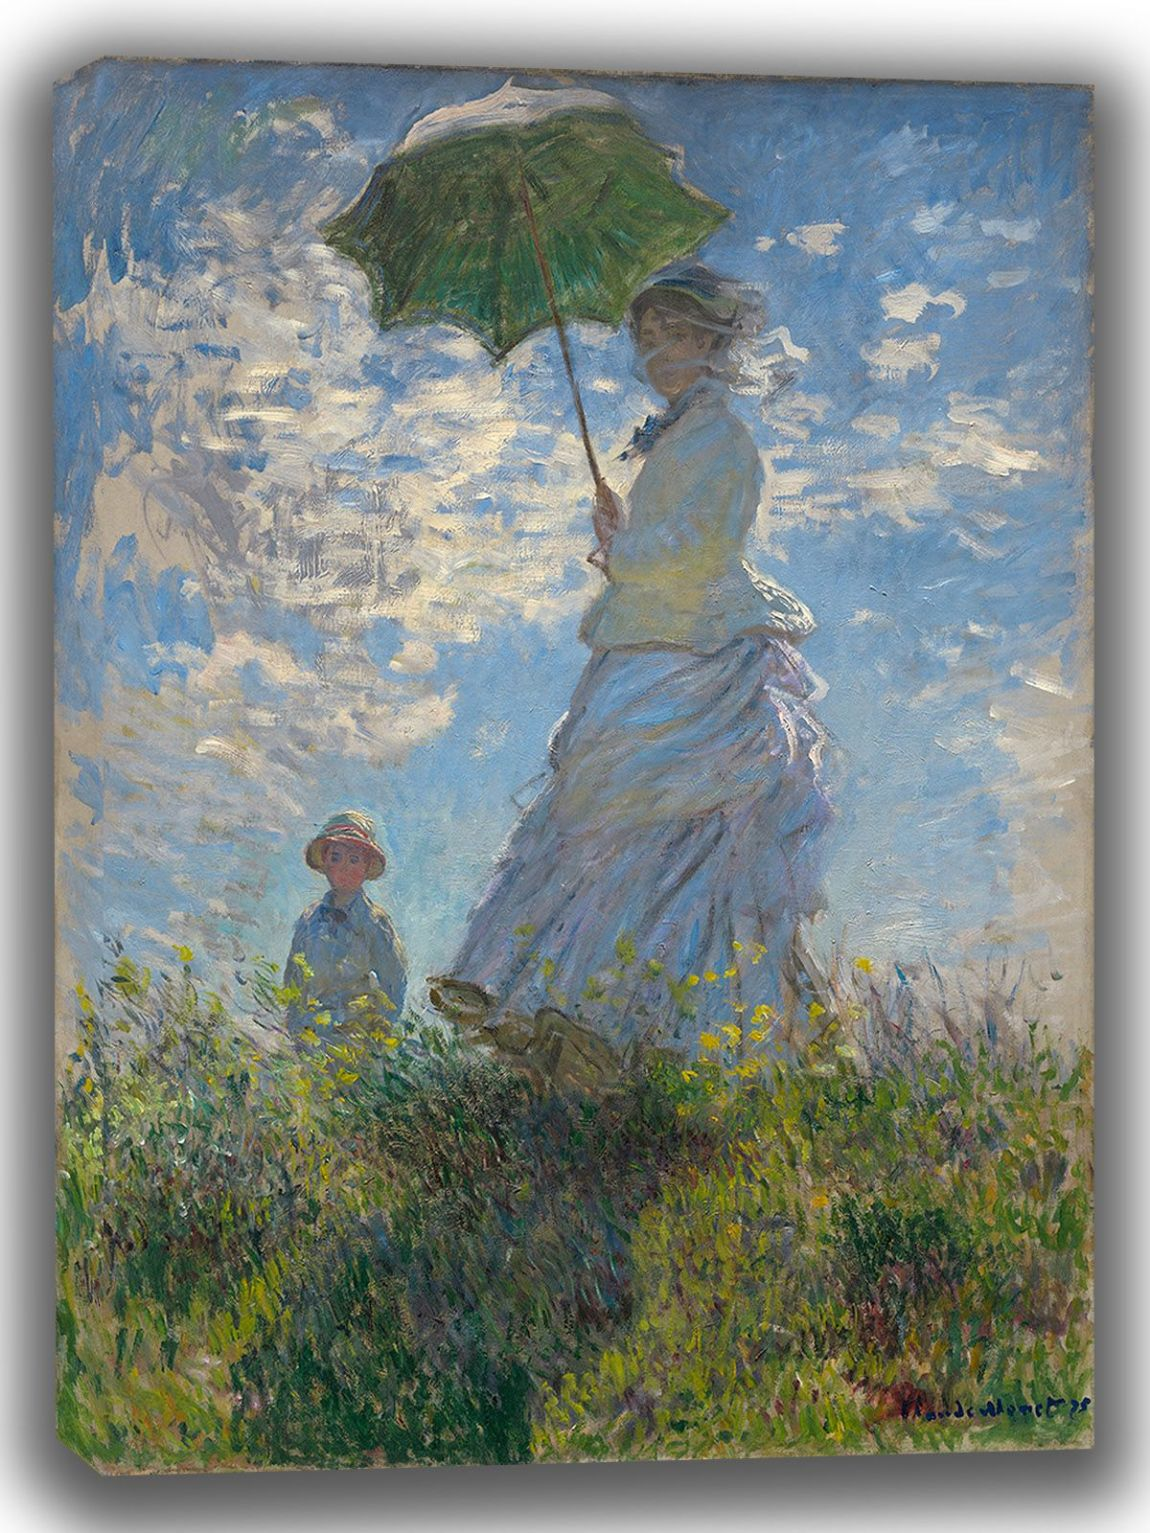 Monet, Claude: Woman with a Parasol - Madame Monet and Her Son. Fine Art Canvas. Sizes: A4/A3/A2/A1 (003556)